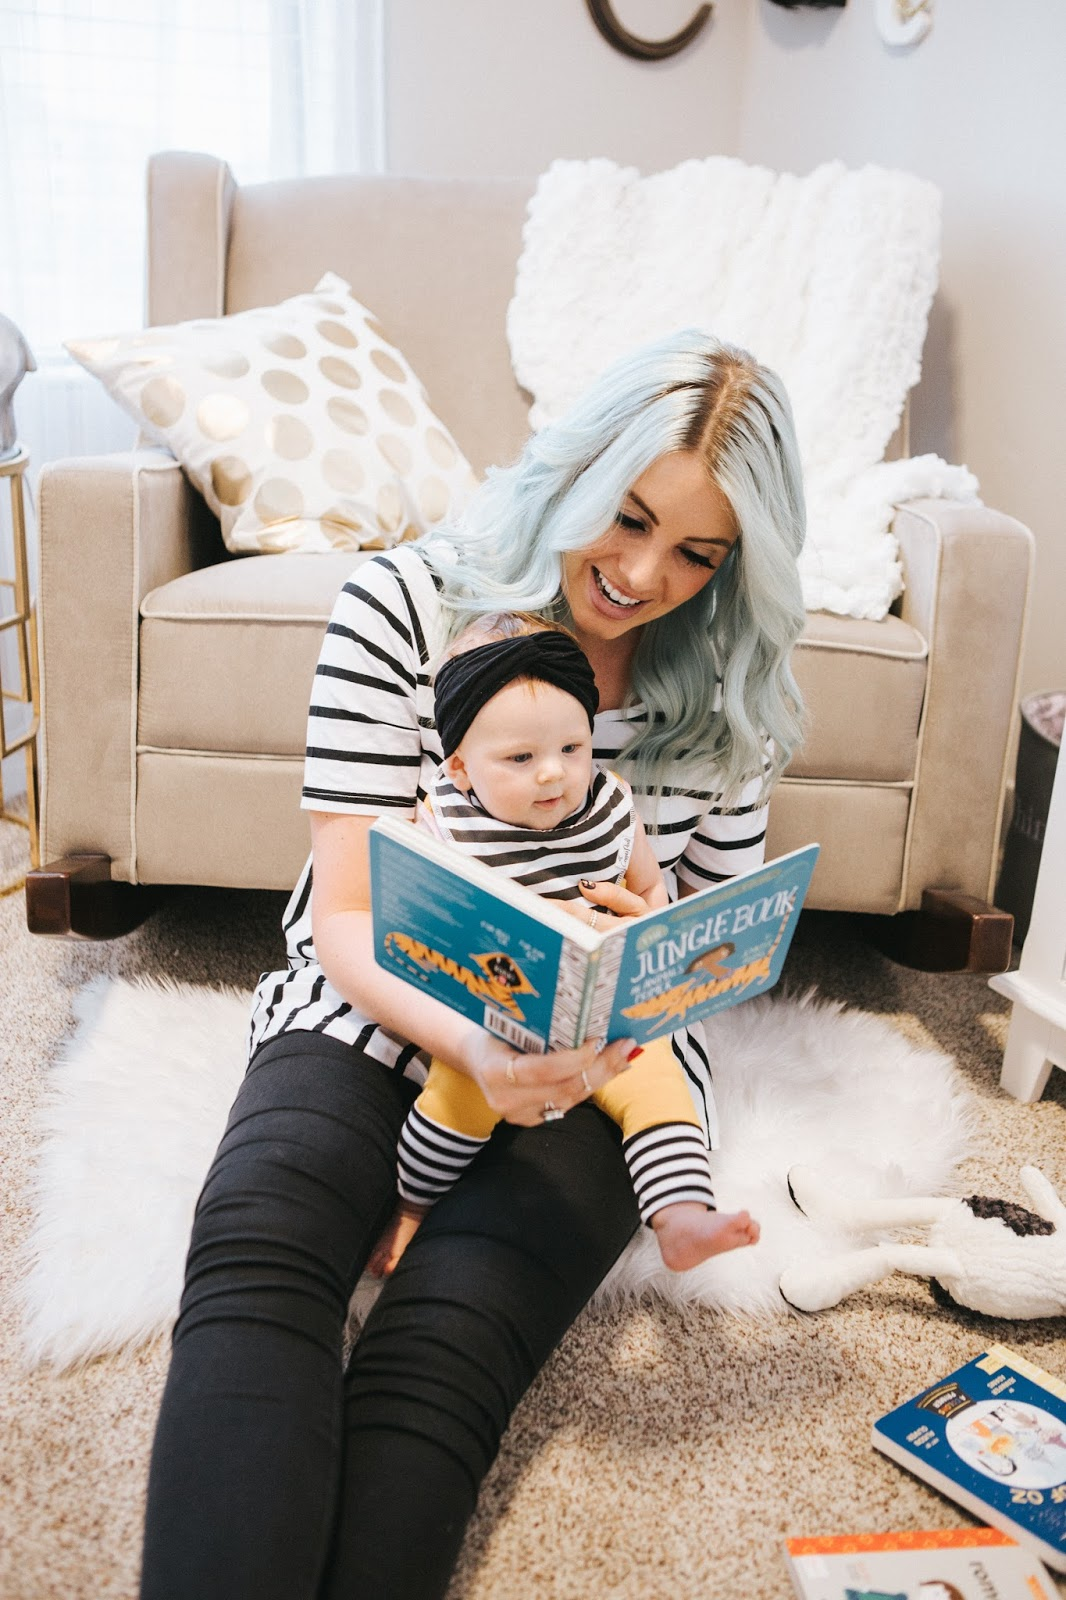 Baby Lit Books, Utah Fashion Blogger, Mommy Blogger